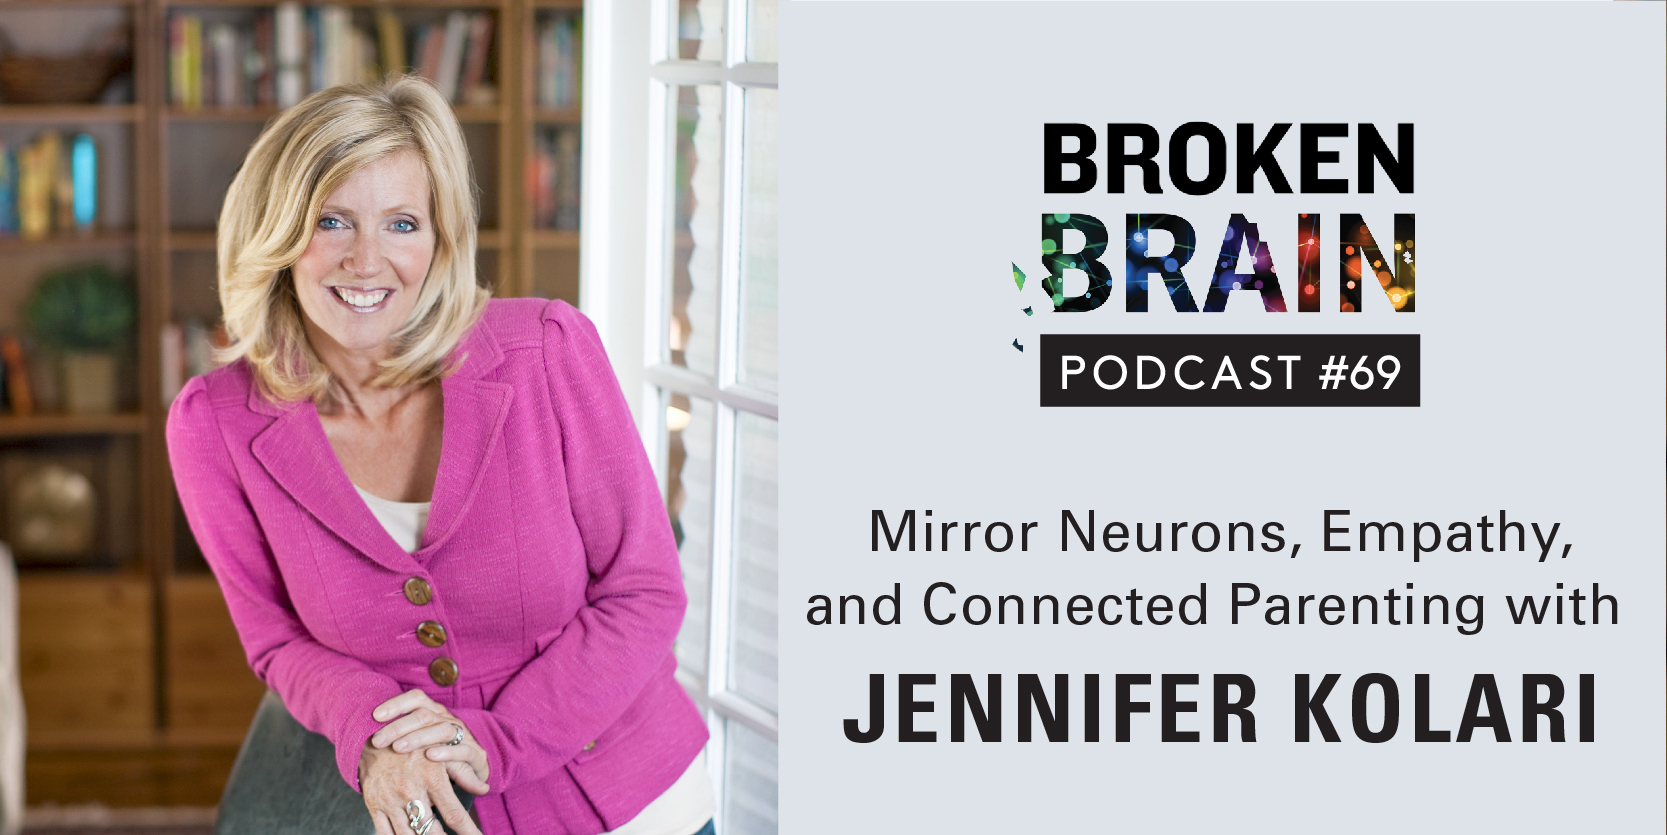 Broken Brain Podcasts - Dr  Mark Hyman